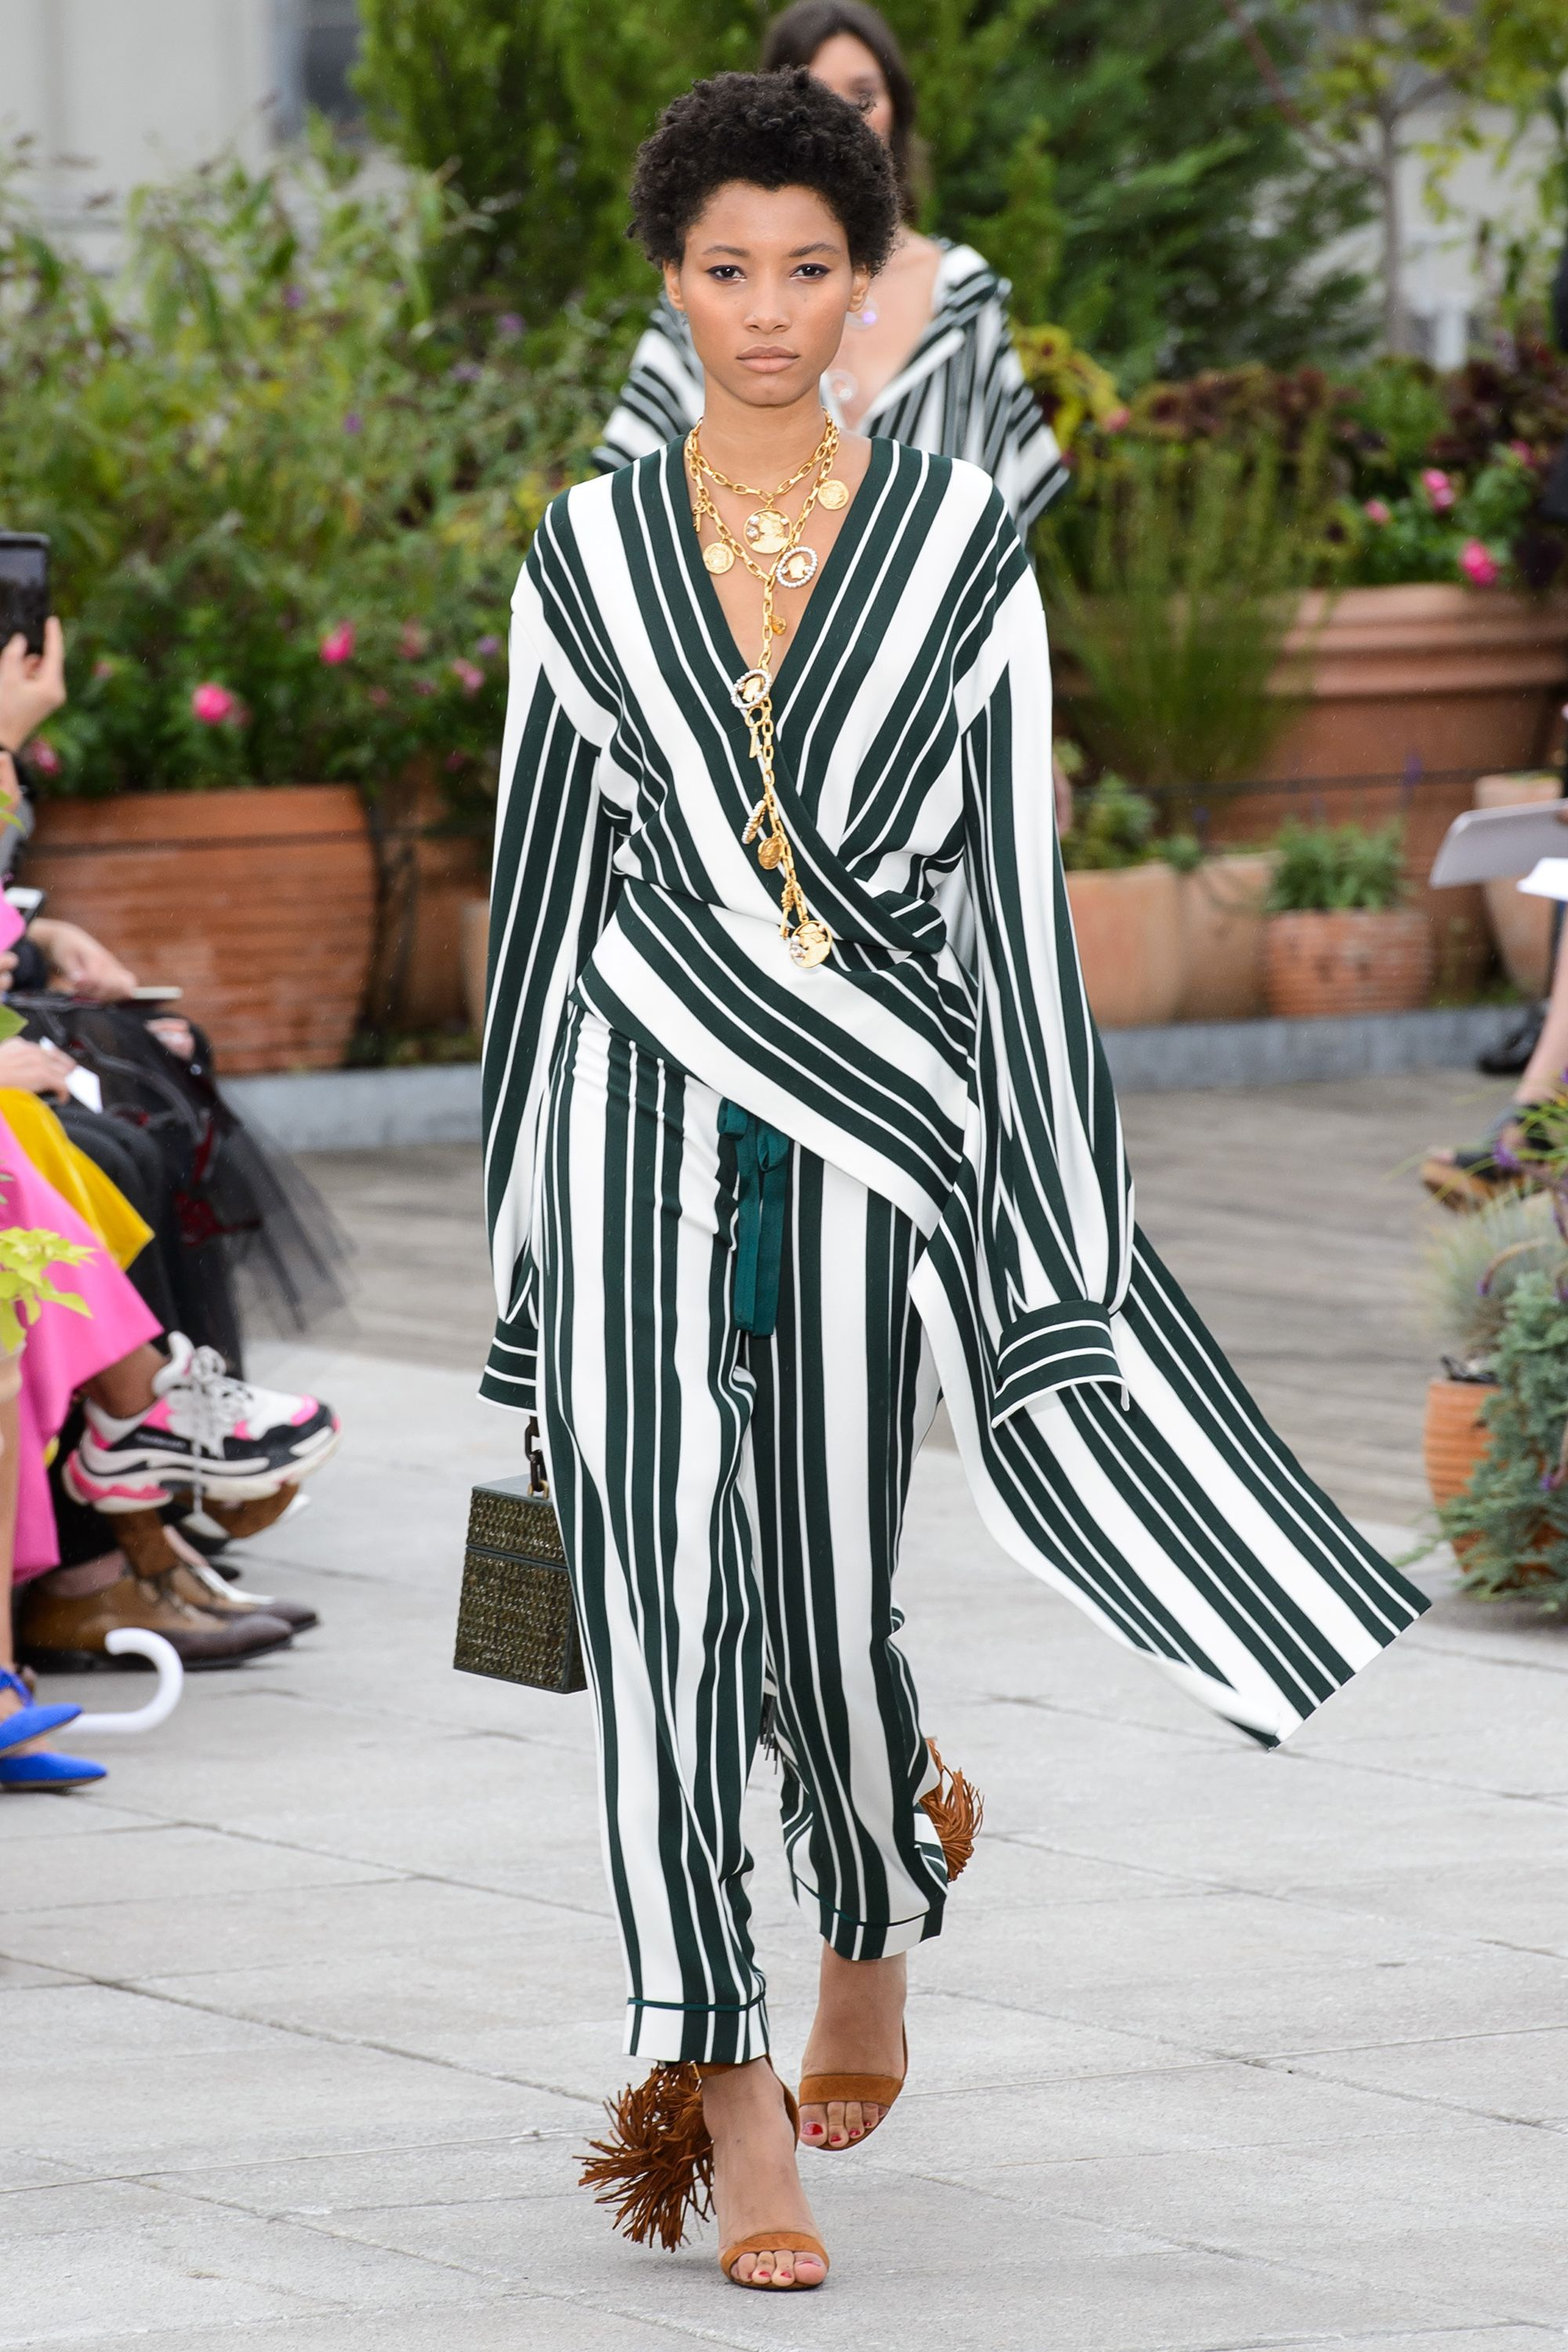 The Hottest Celebrity Appearances At NYFW 2019 The Hottest Celebrity Appearances At NYFW 2019 new images